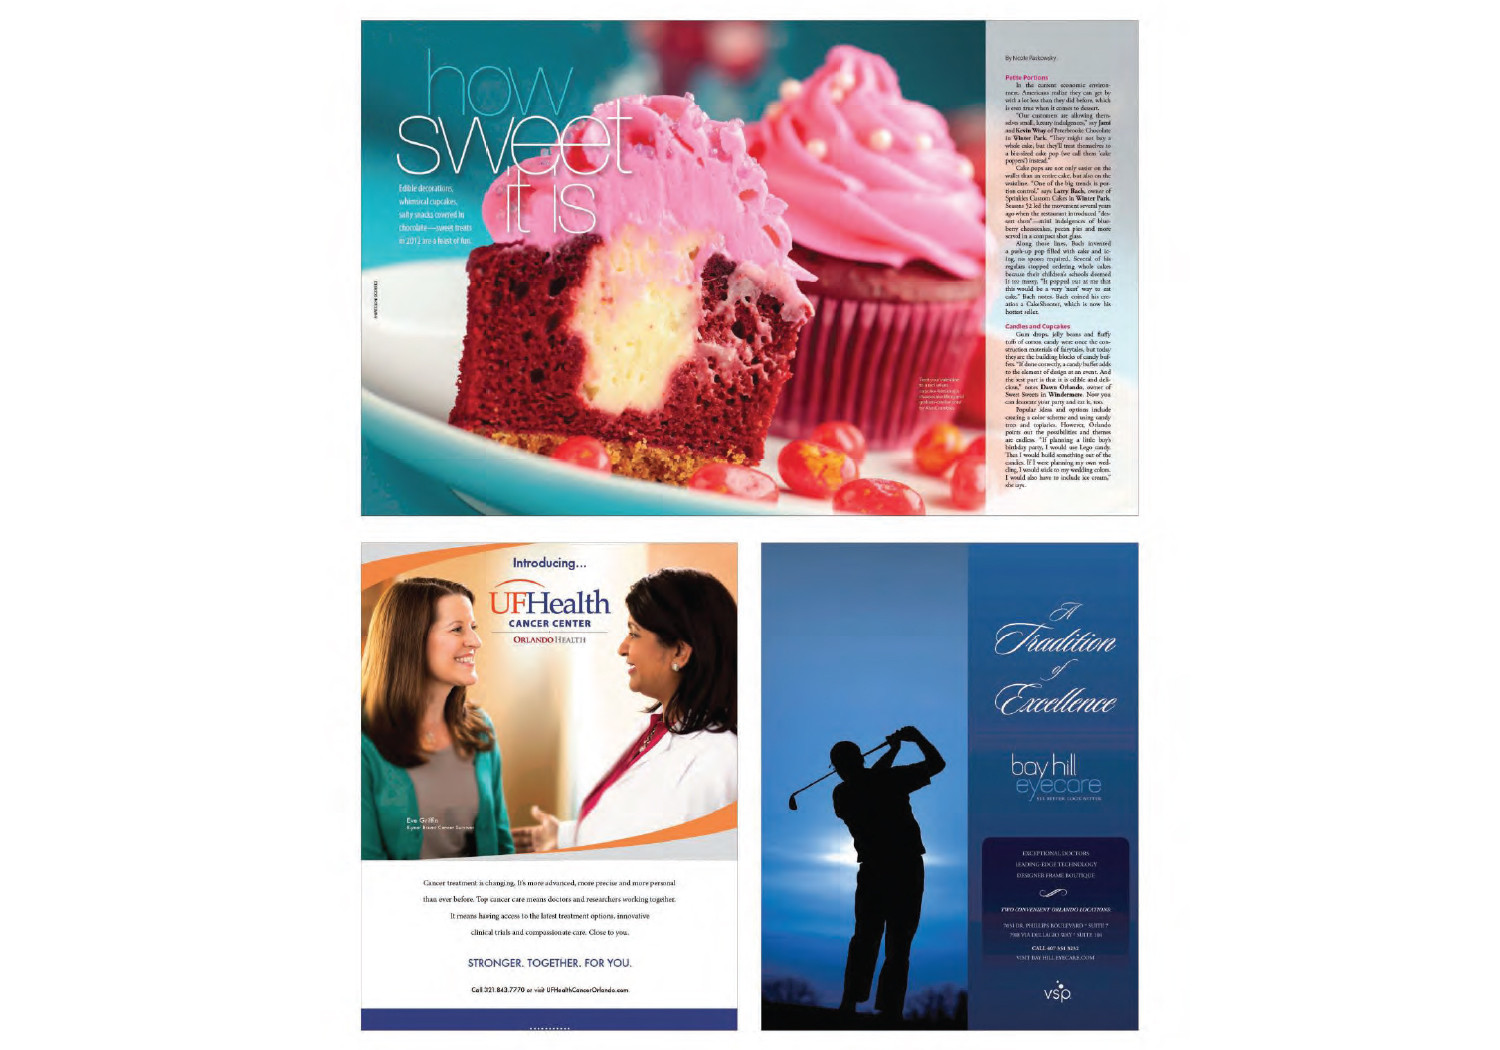 Magazine Design (Ads, Covers, Features, Articles)